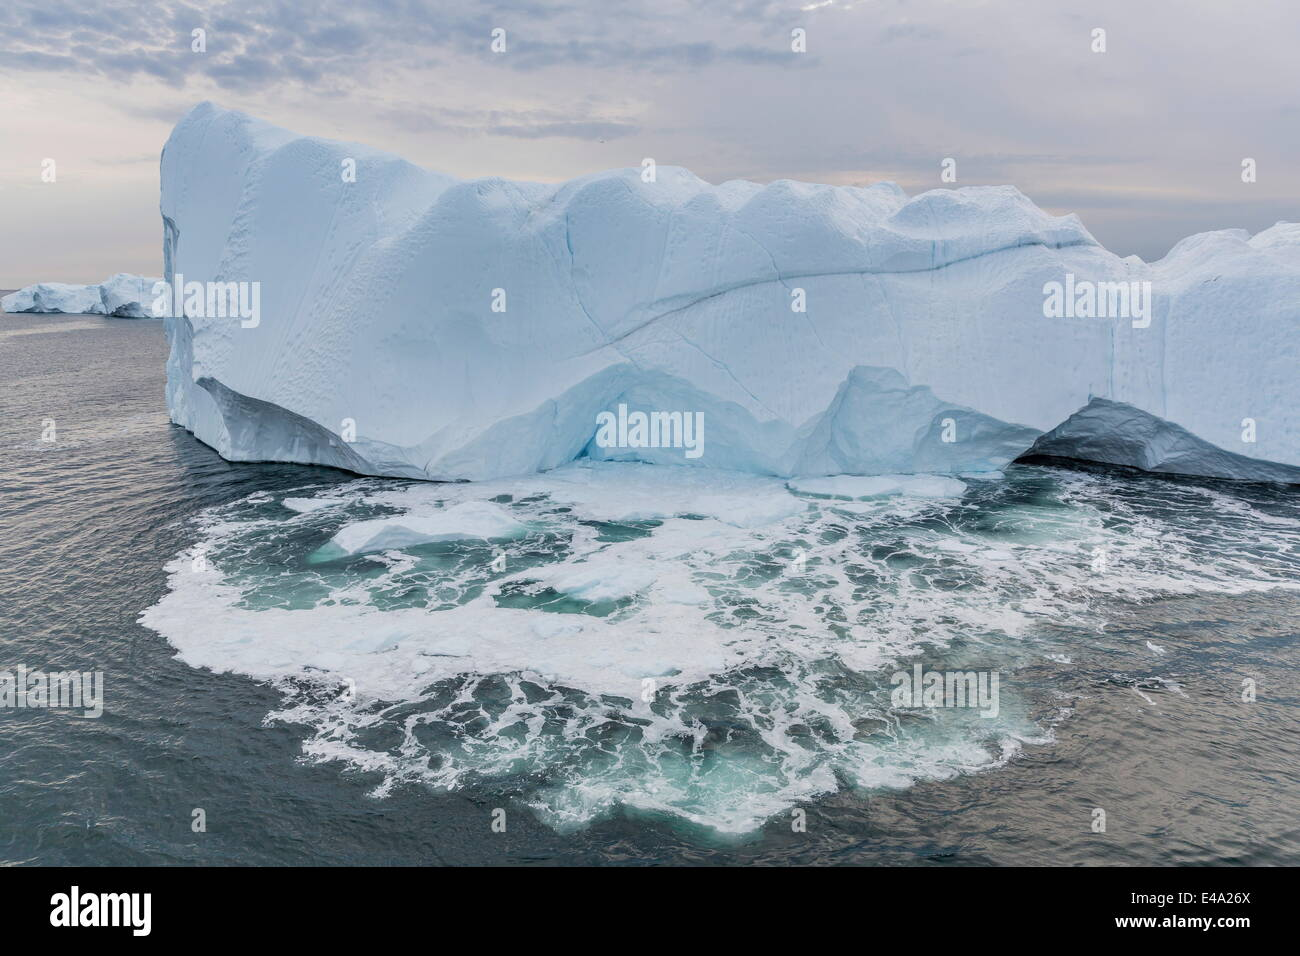 Huge icebergs calving from the Ilulissat Glacier, UNESCO World Heritage Site, Ilulissat, Greenland, Polar Regions - Stock Image